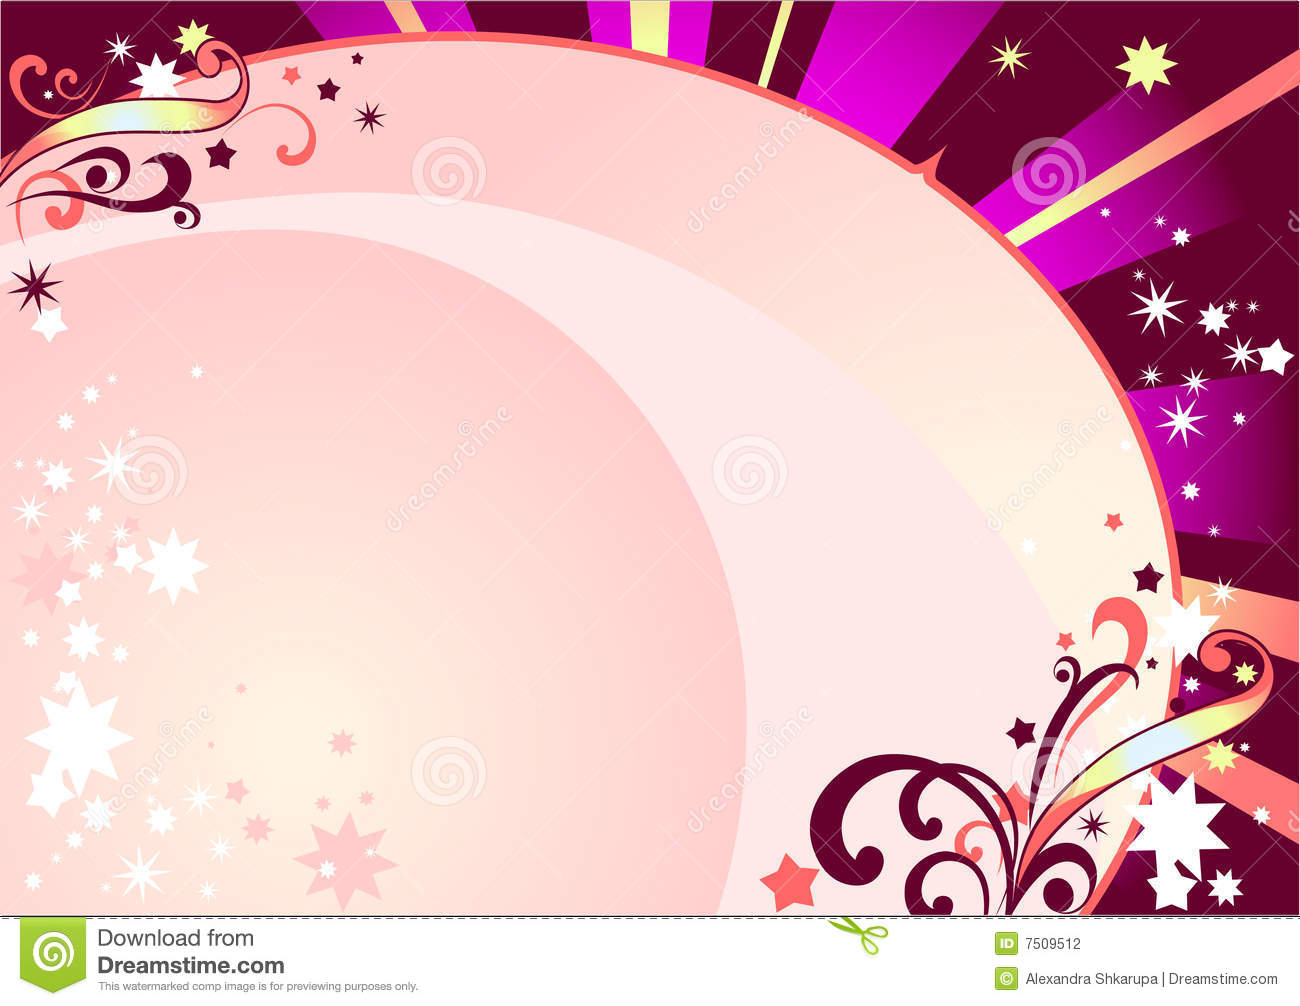 Celebration Background Stock Photography - Image: 7509512: dreamstime.com/stock-photography-celebration-background-image7509512